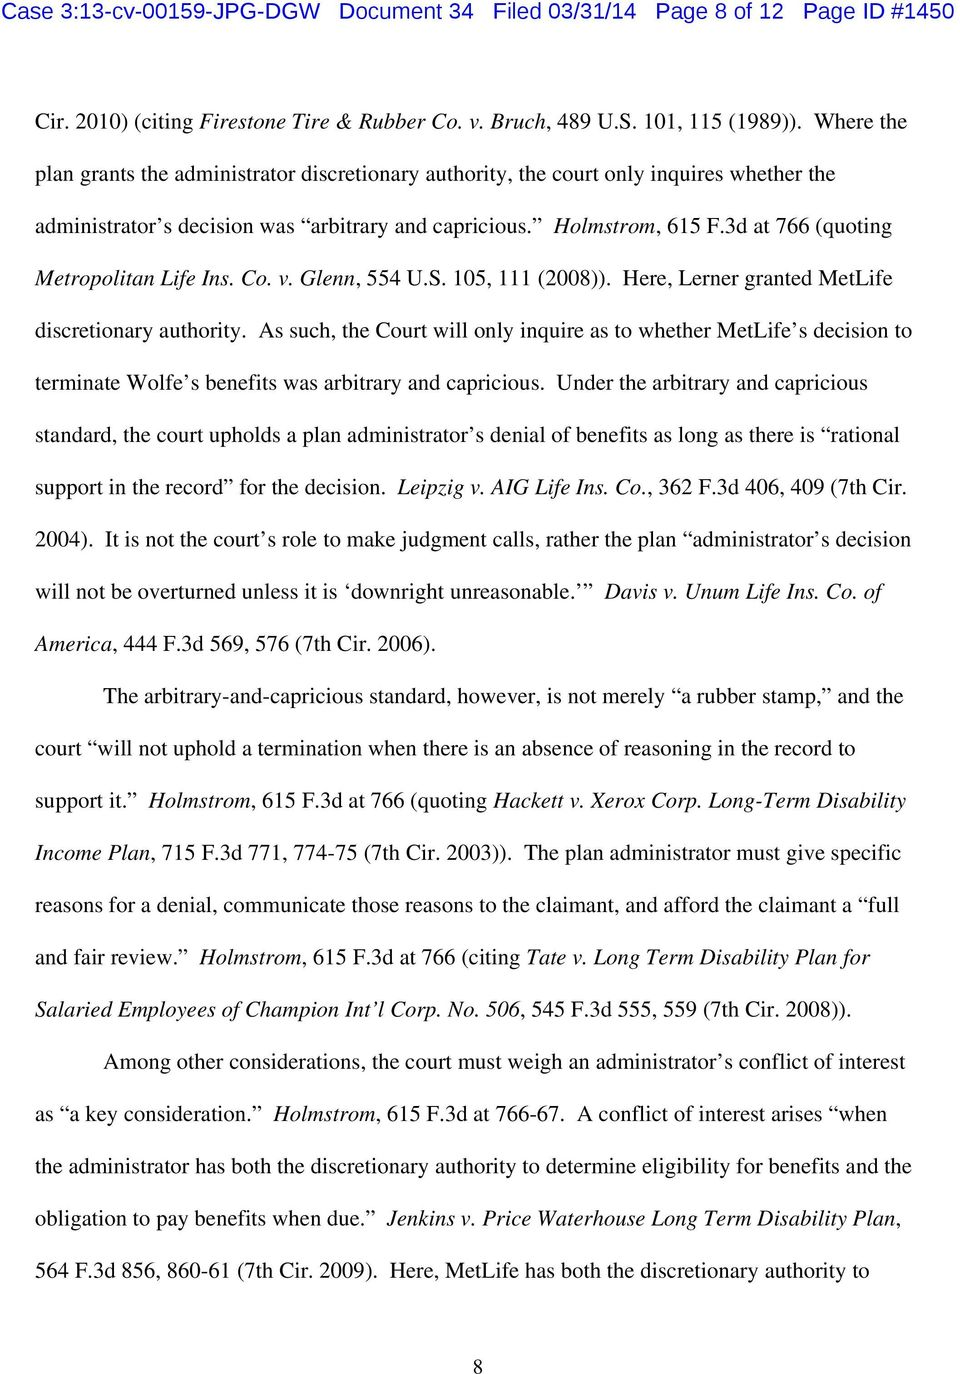 3d at 766 (quoting Metropolitan Life Ins. Co. v. Glenn, 554 U.S. 105, 111 (2008)). Here, Lerner granted MetLife discretionary authority.